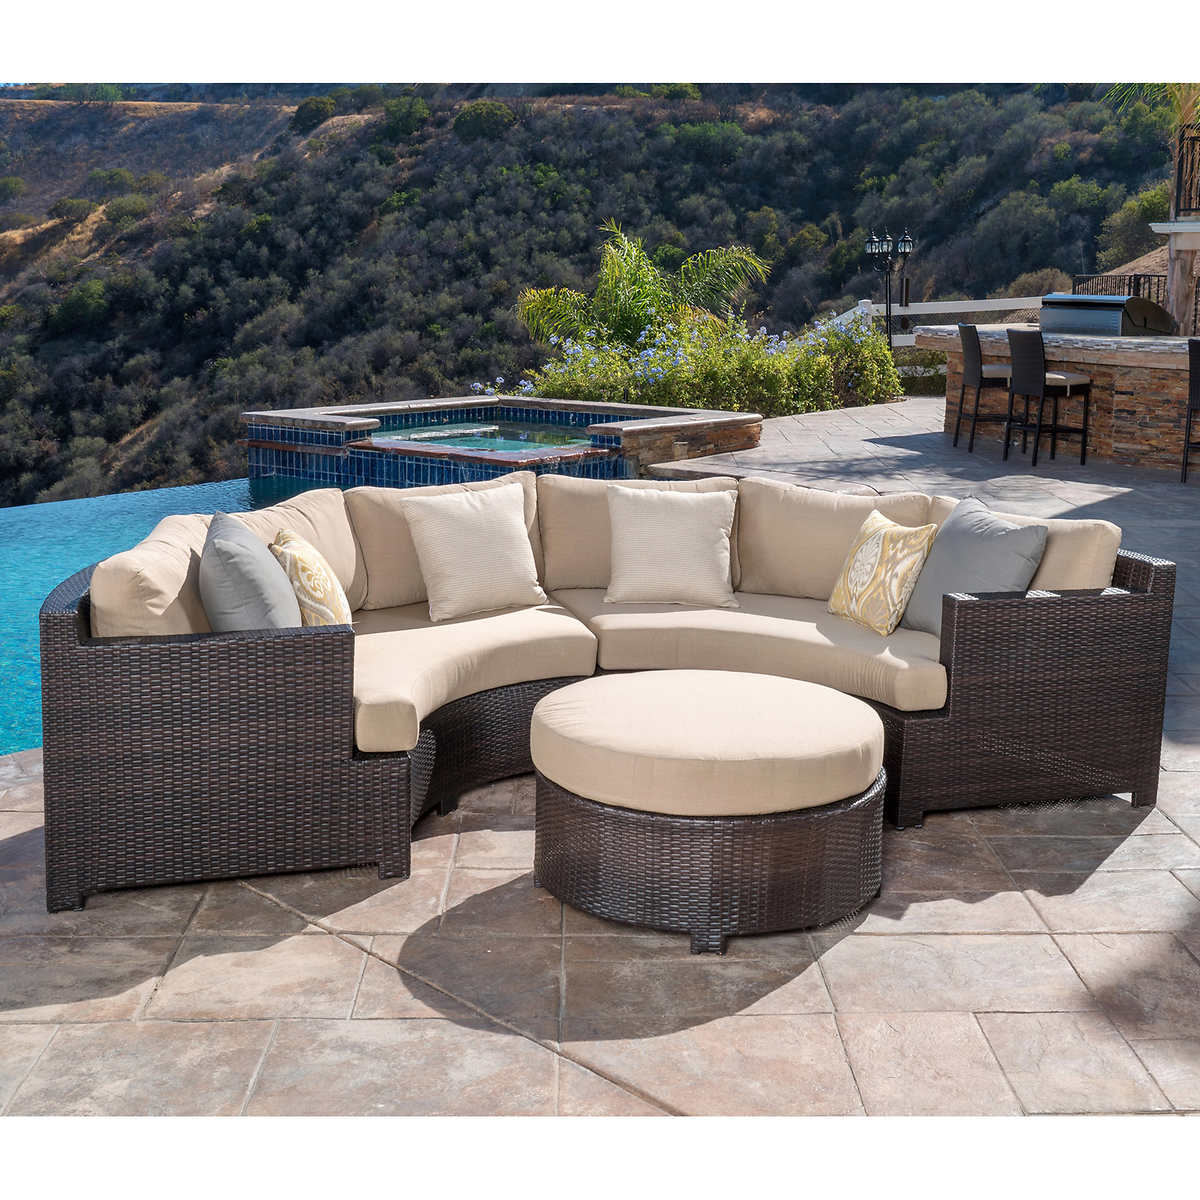 Belmont 3-piece Curved Sectional Seating Set - Seating Sets Costco